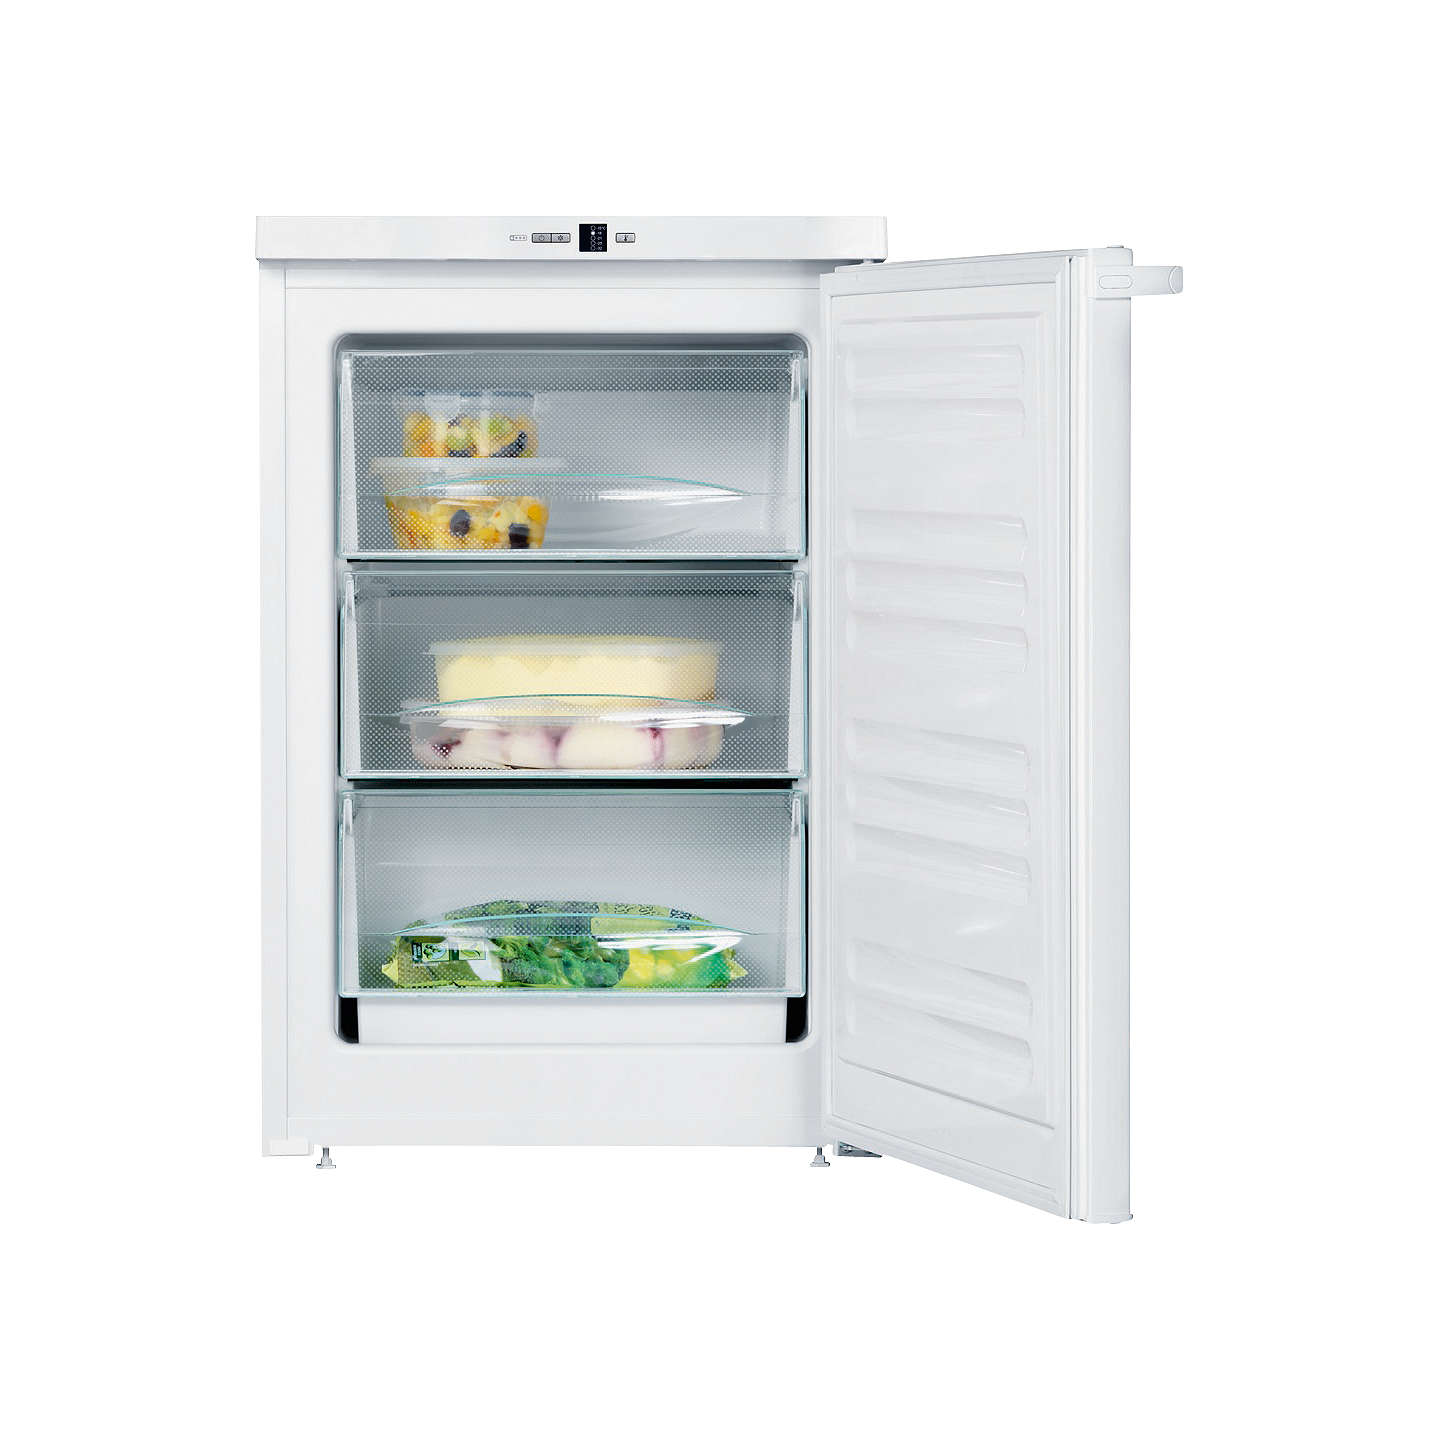 BuyMiele F12011S-1 Freezer, A+ Energy Rating, 55cm Wide, White Online at johnlewis.com